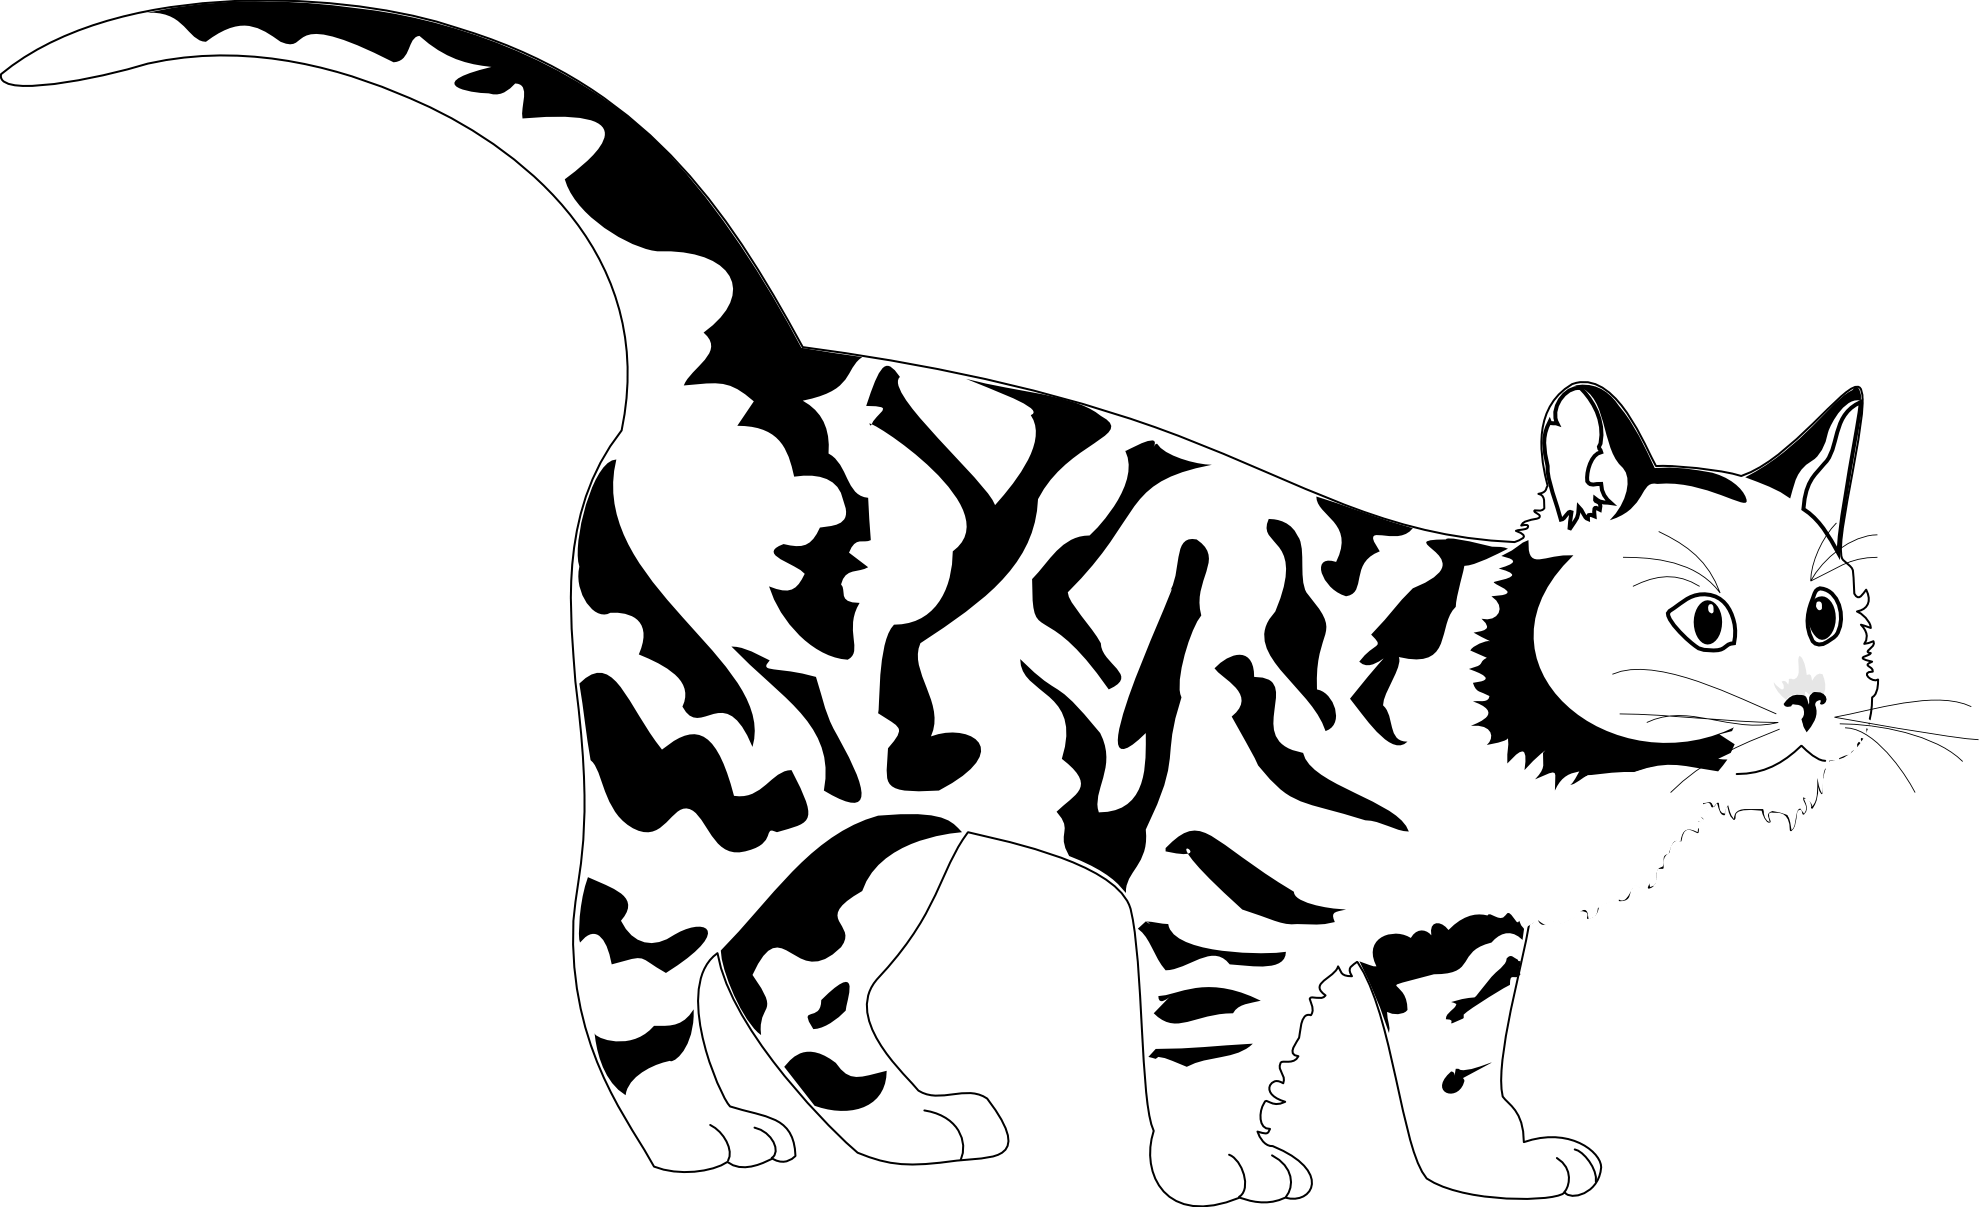 Tiger cat clipart jpg black and white library White Tiger Coloring Pages - Democraciaejustica jpg black and white library